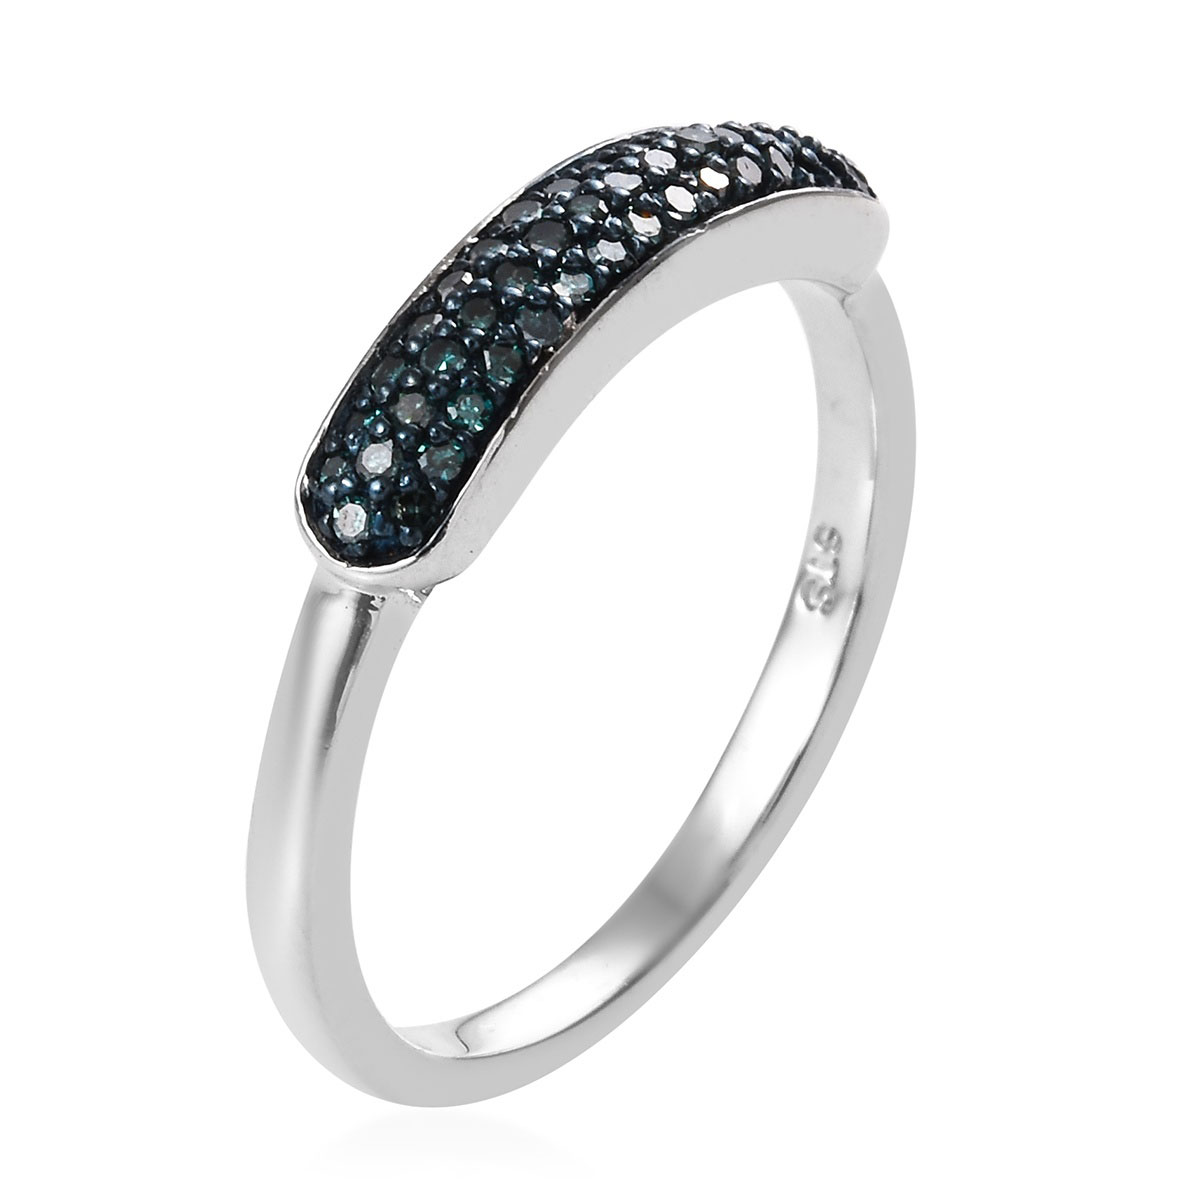 Blue Diamond (IR) Ring in Blue Rhodium & Platinum Over Sterling Silver (Size 9.0) 0.25 ctw